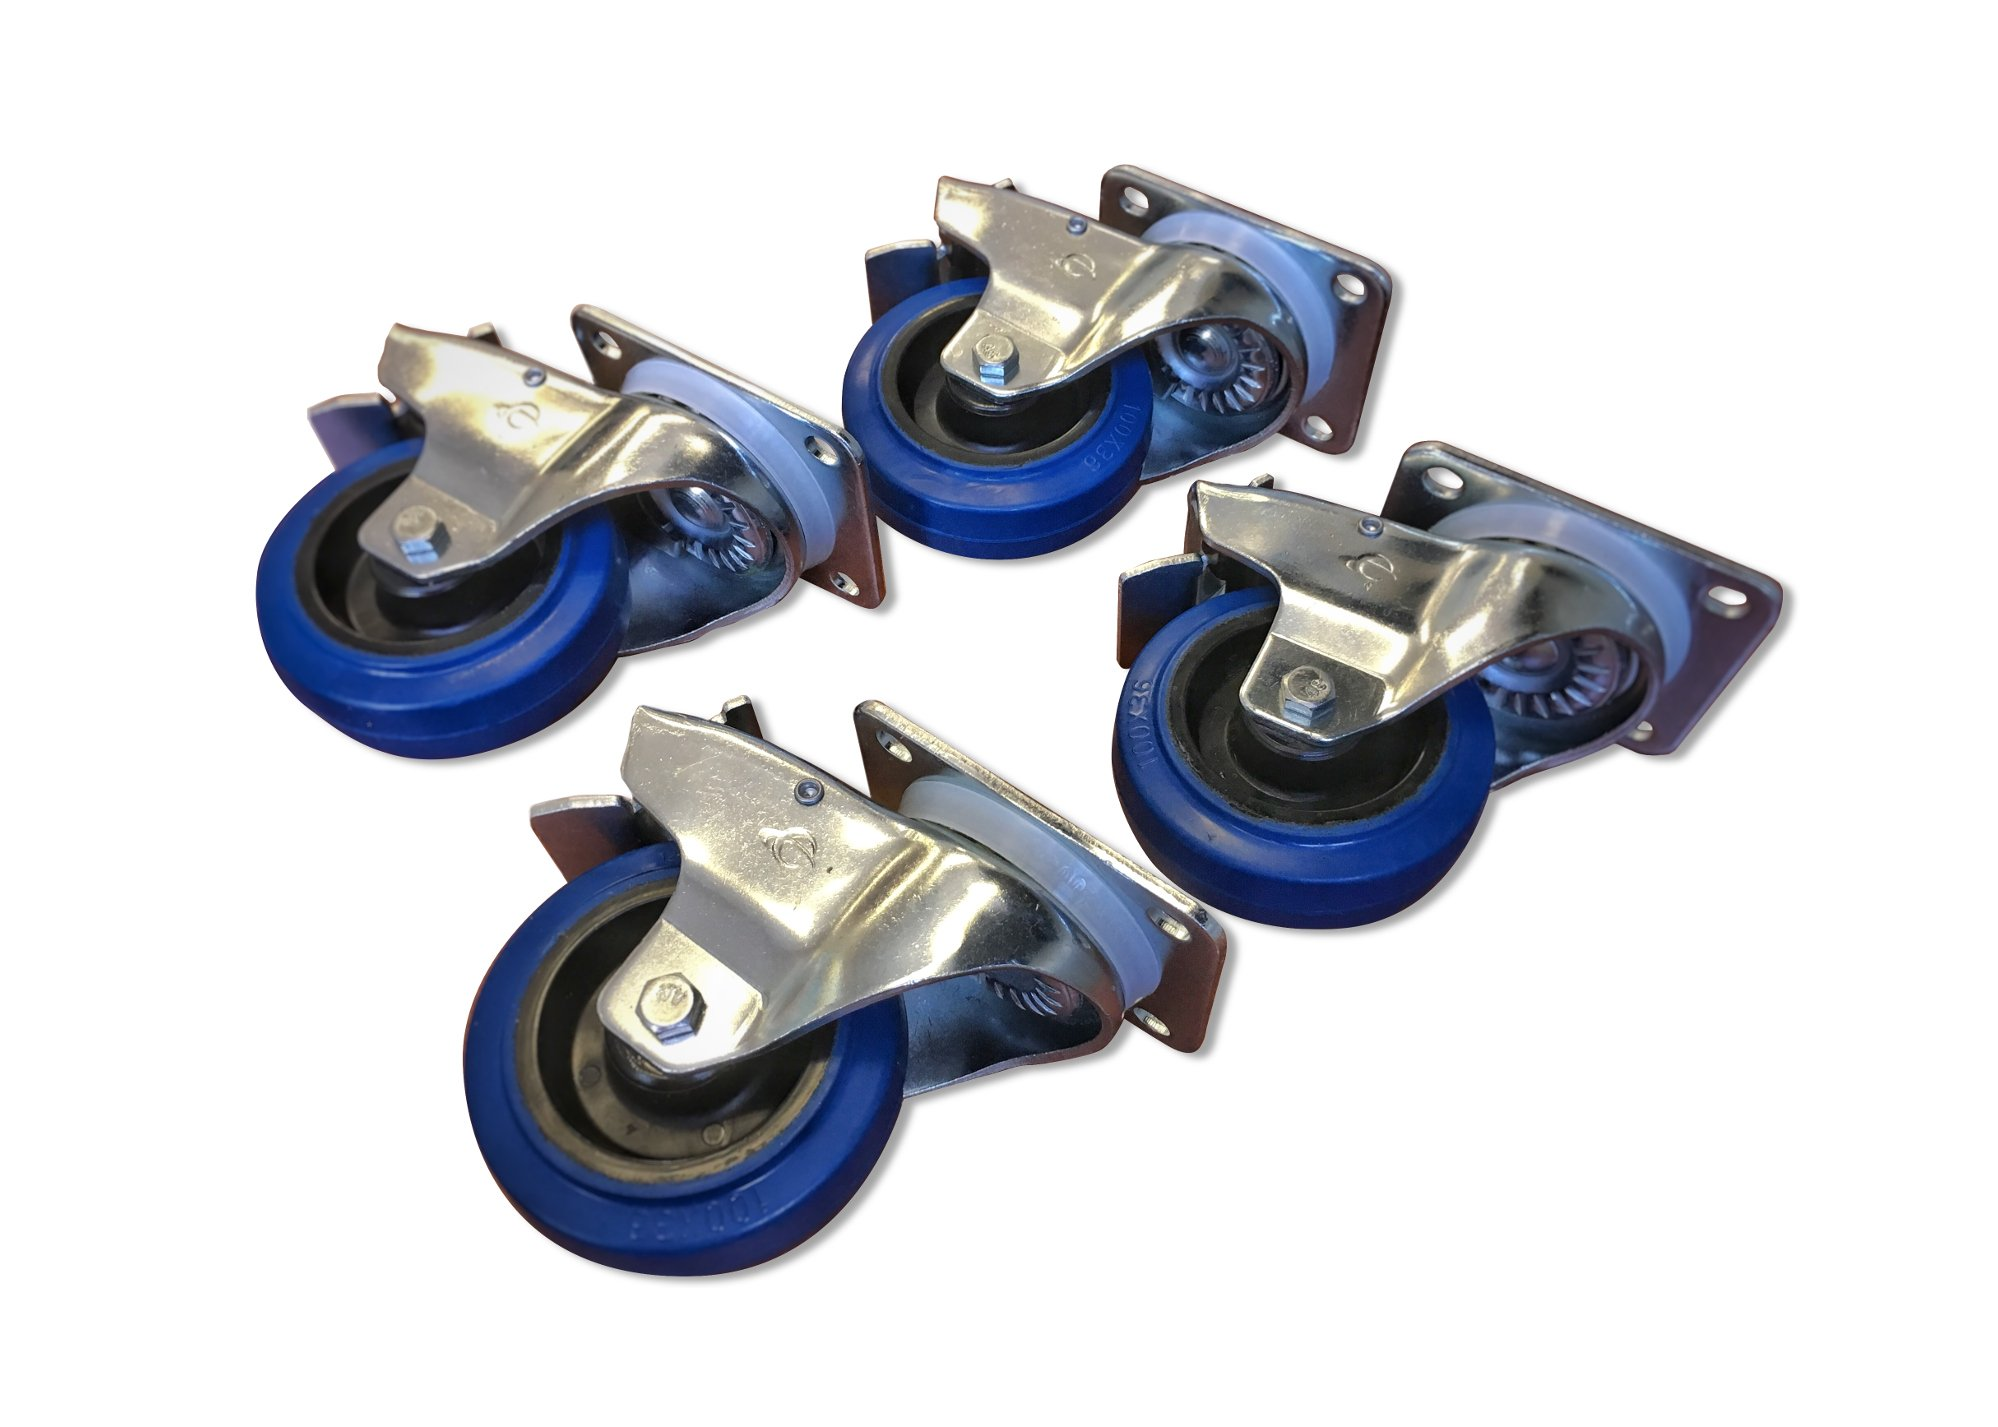 Wheel Kit with 4 Locking Casters